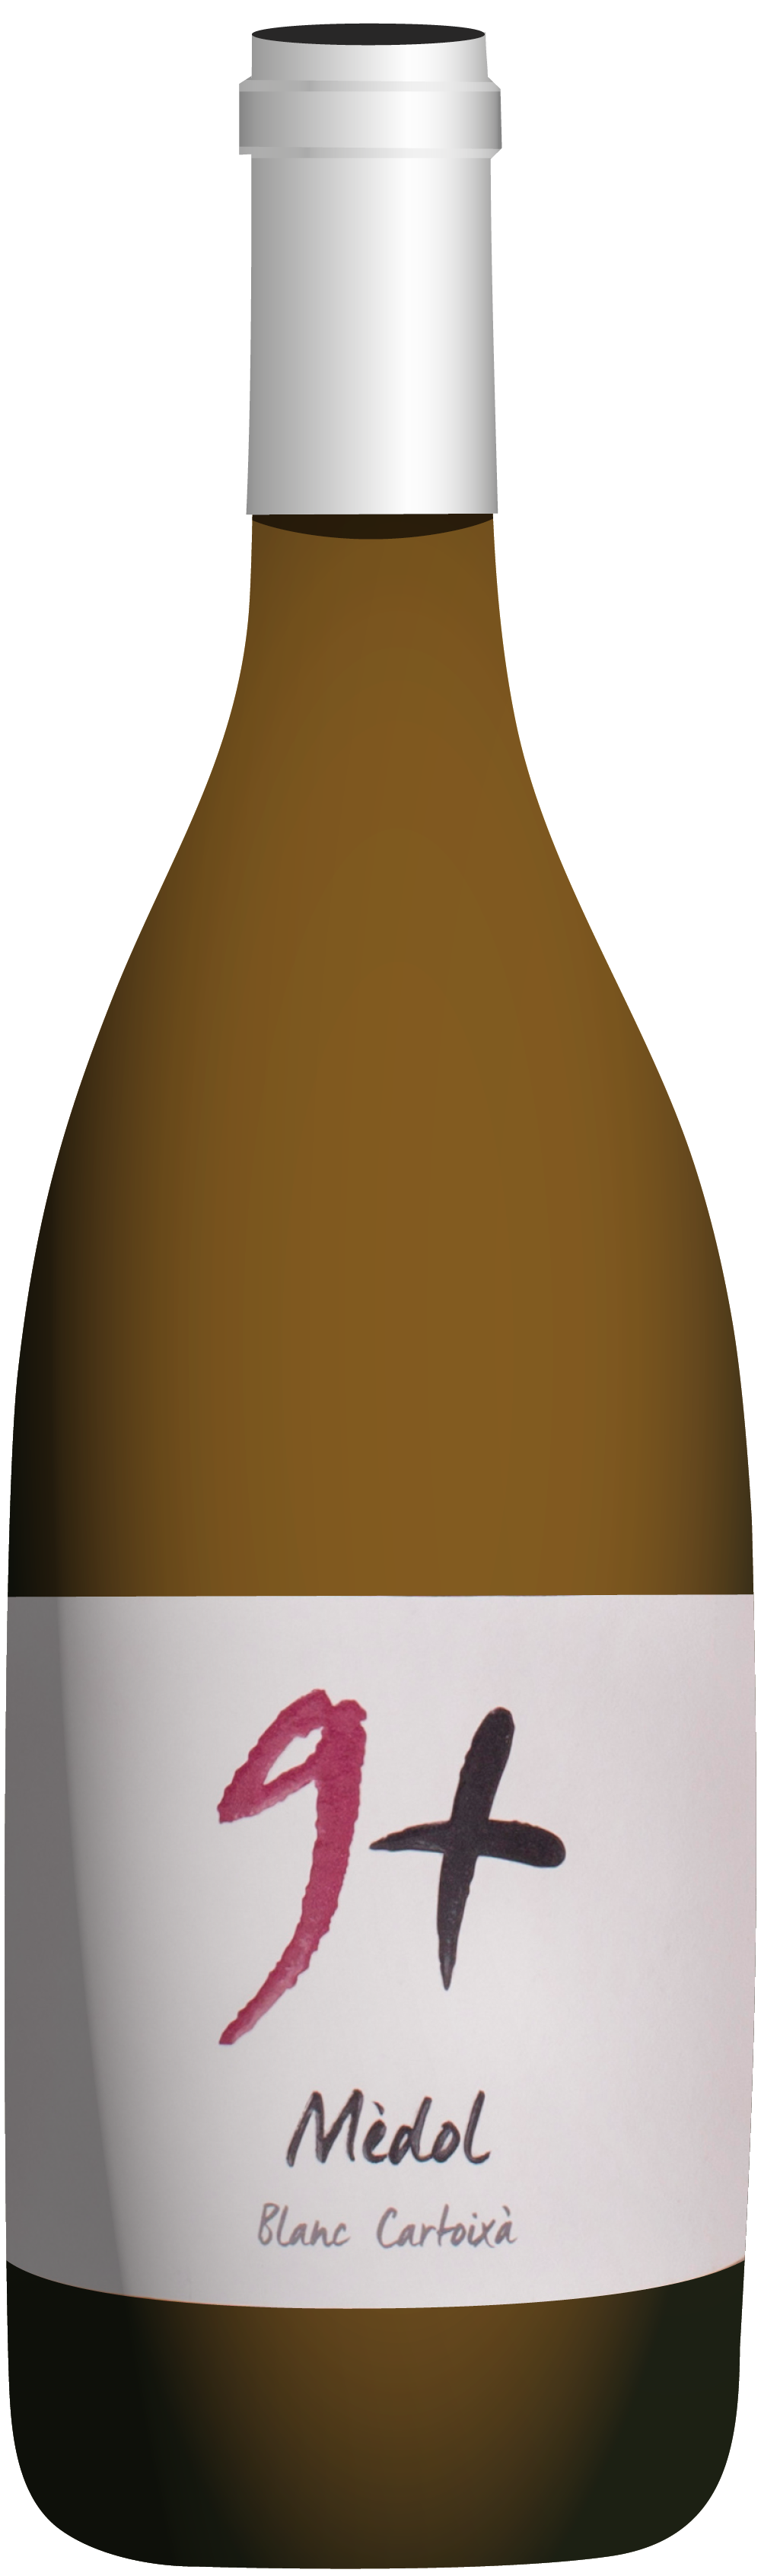 the natural wine company club august 2020 spain celler 9 medol white